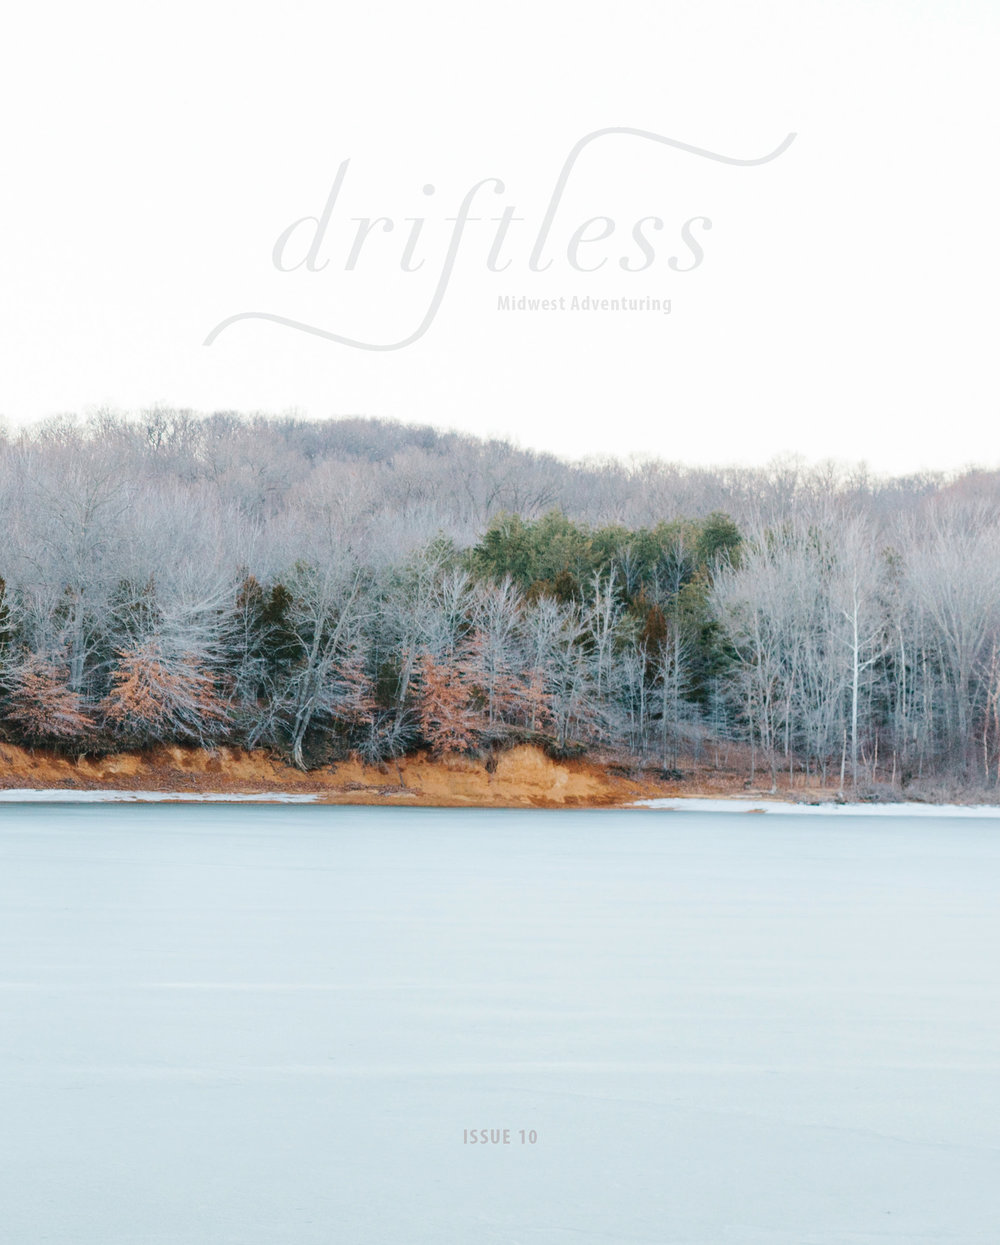 Driftless in an independent, submission-based magazine about food, art, and adventuring in the Midwest.